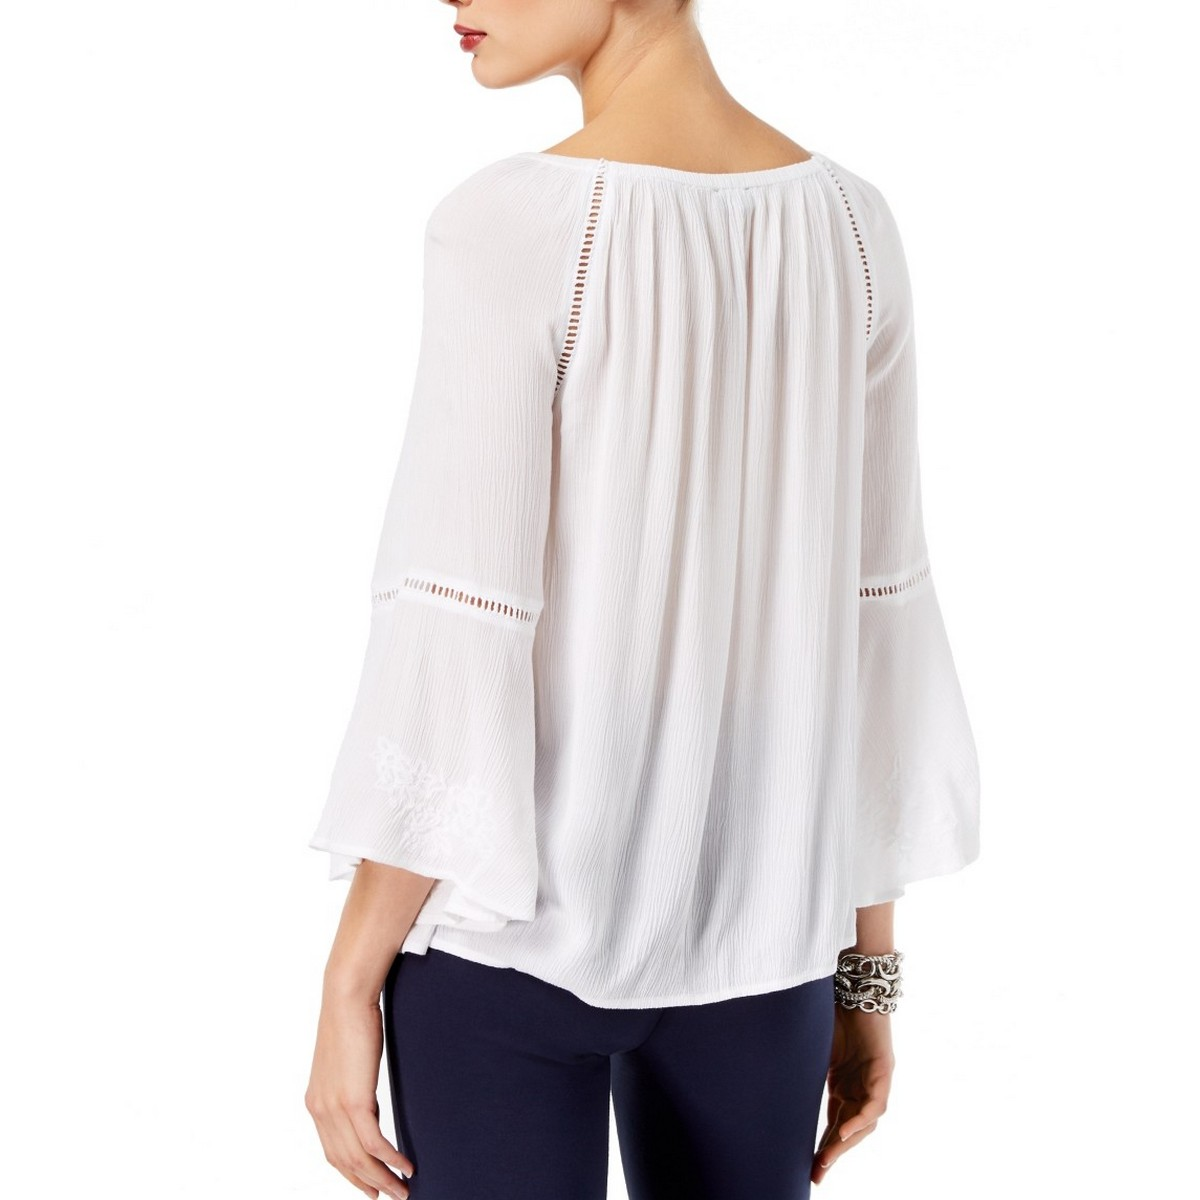 INC-NEW-Women-039-s-Embroidered-Bell-Sleeve-Blouse-Shirt-Top-TEDO thumbnail 6